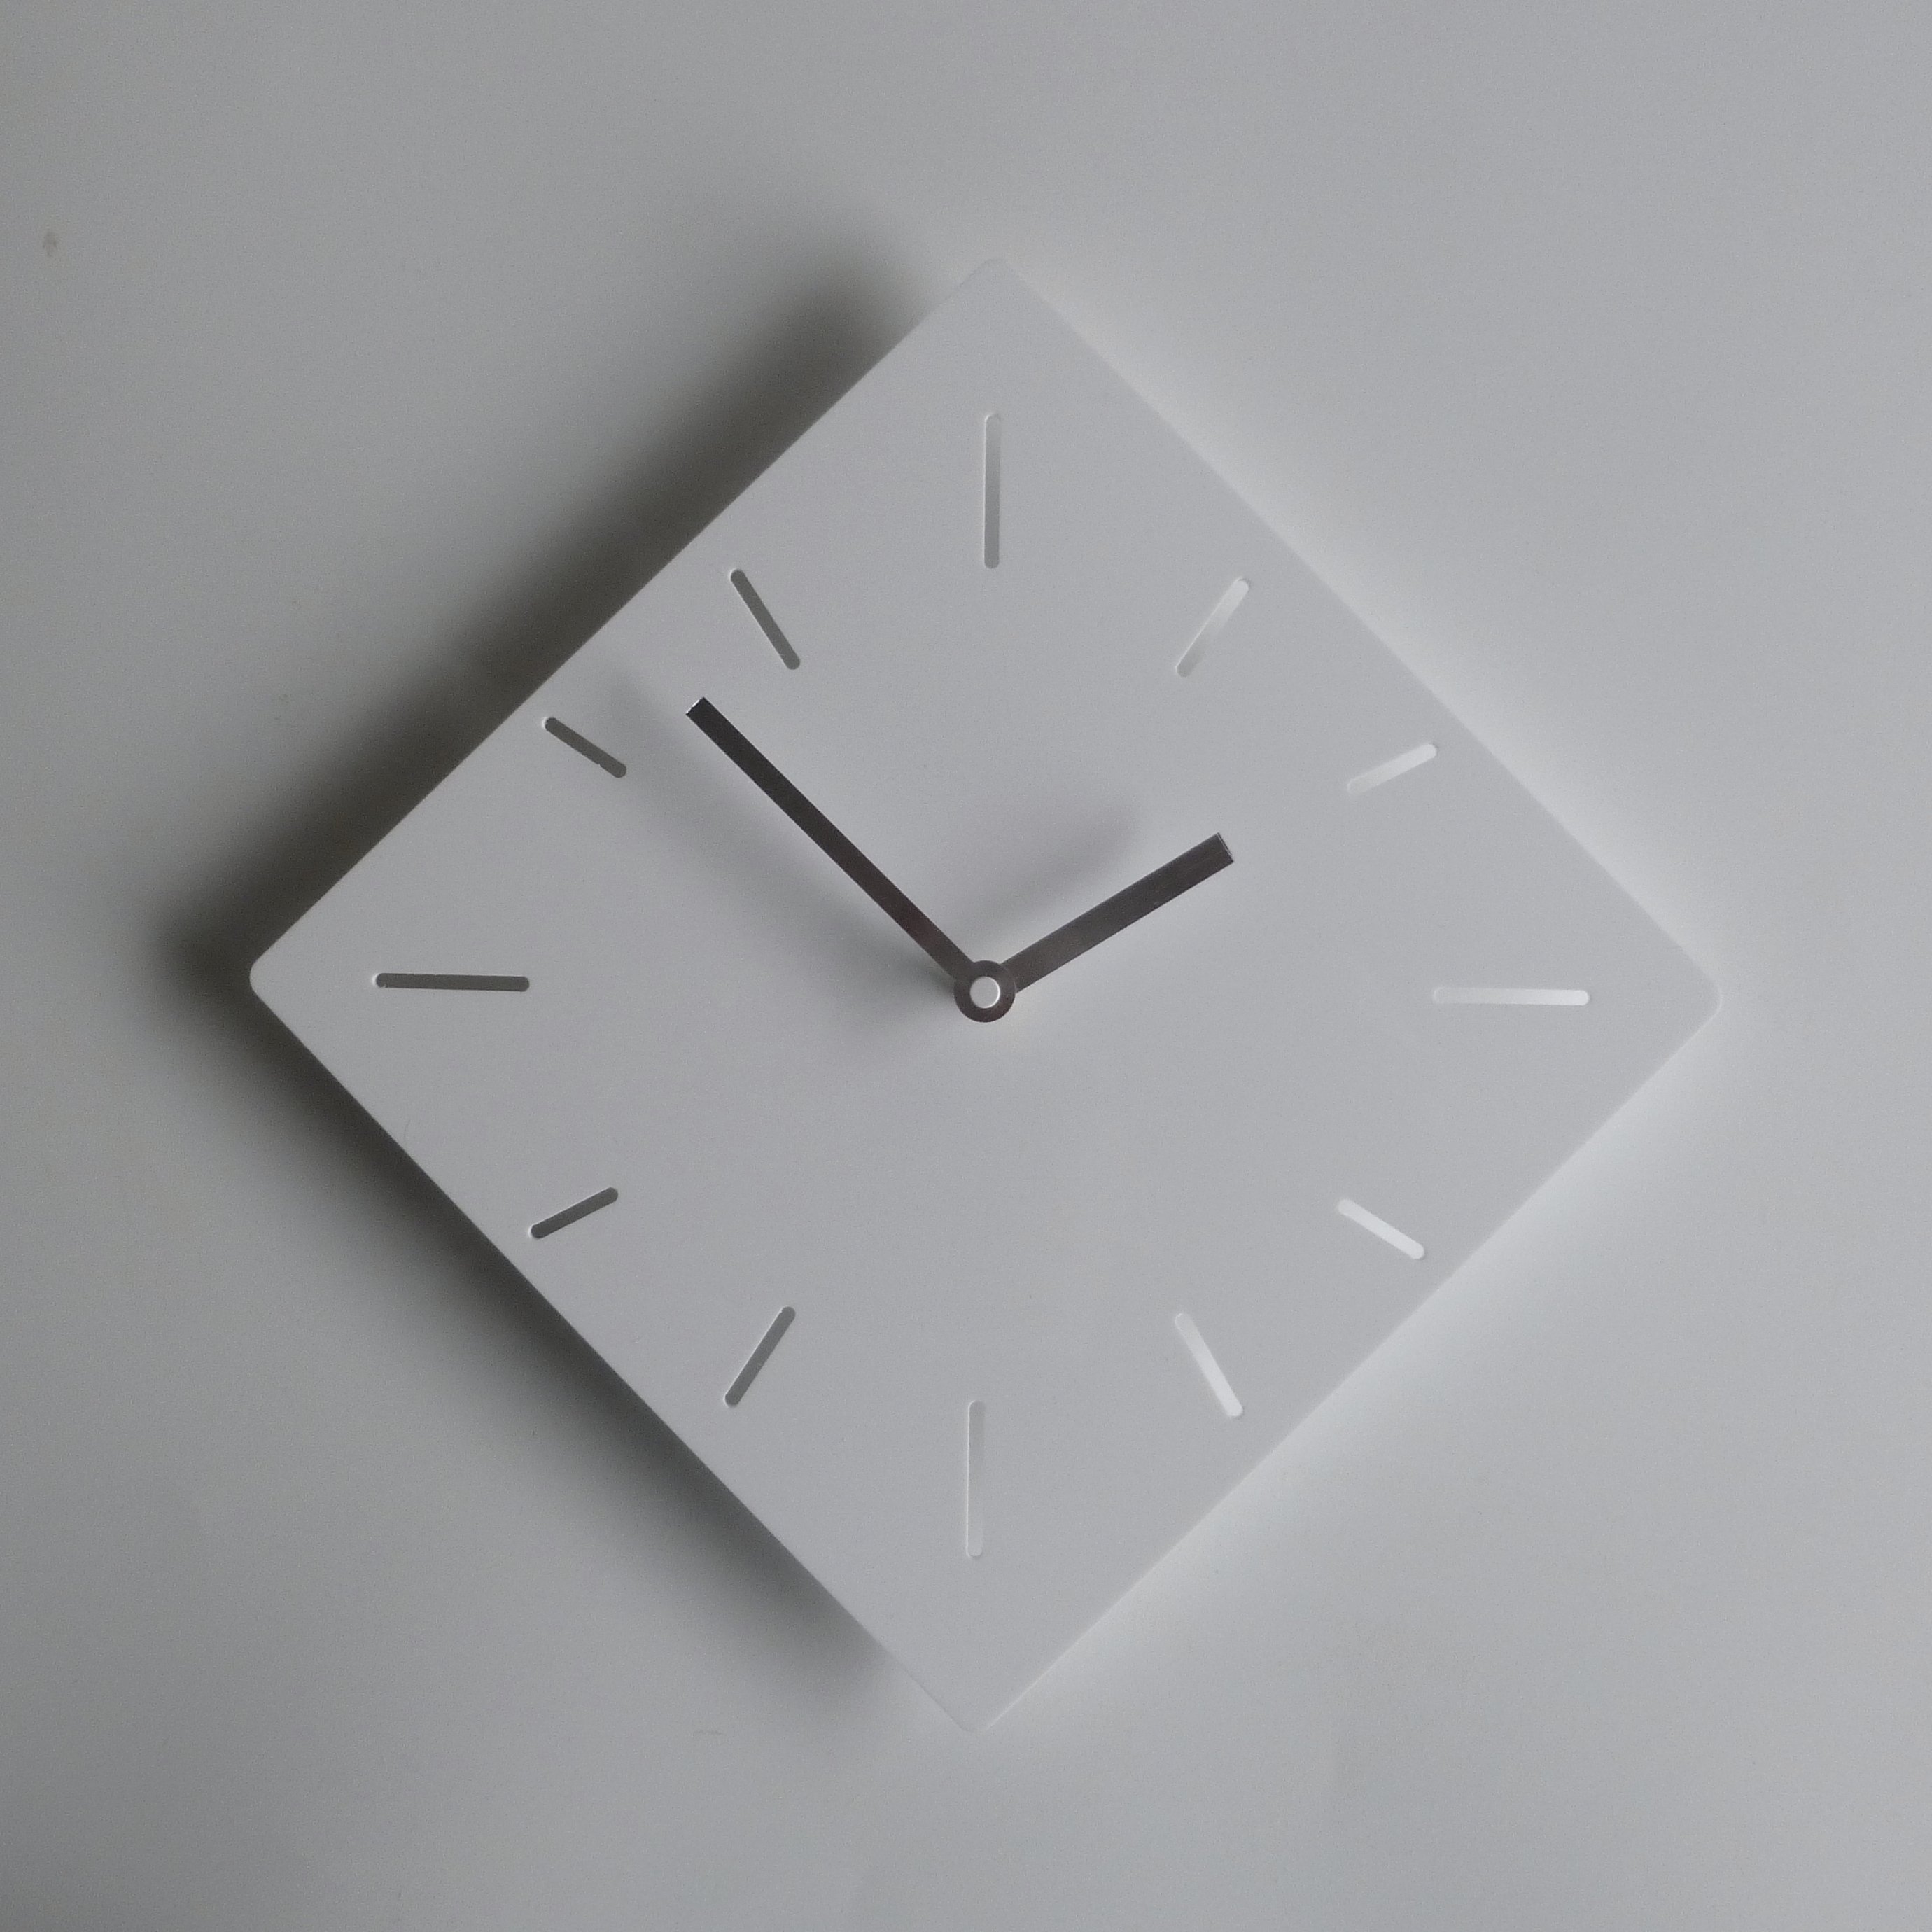 Diamond Outline Wall Clock I'm a novice in java and i'm a little bit of trouble trying to get the output i need. vanilla design store